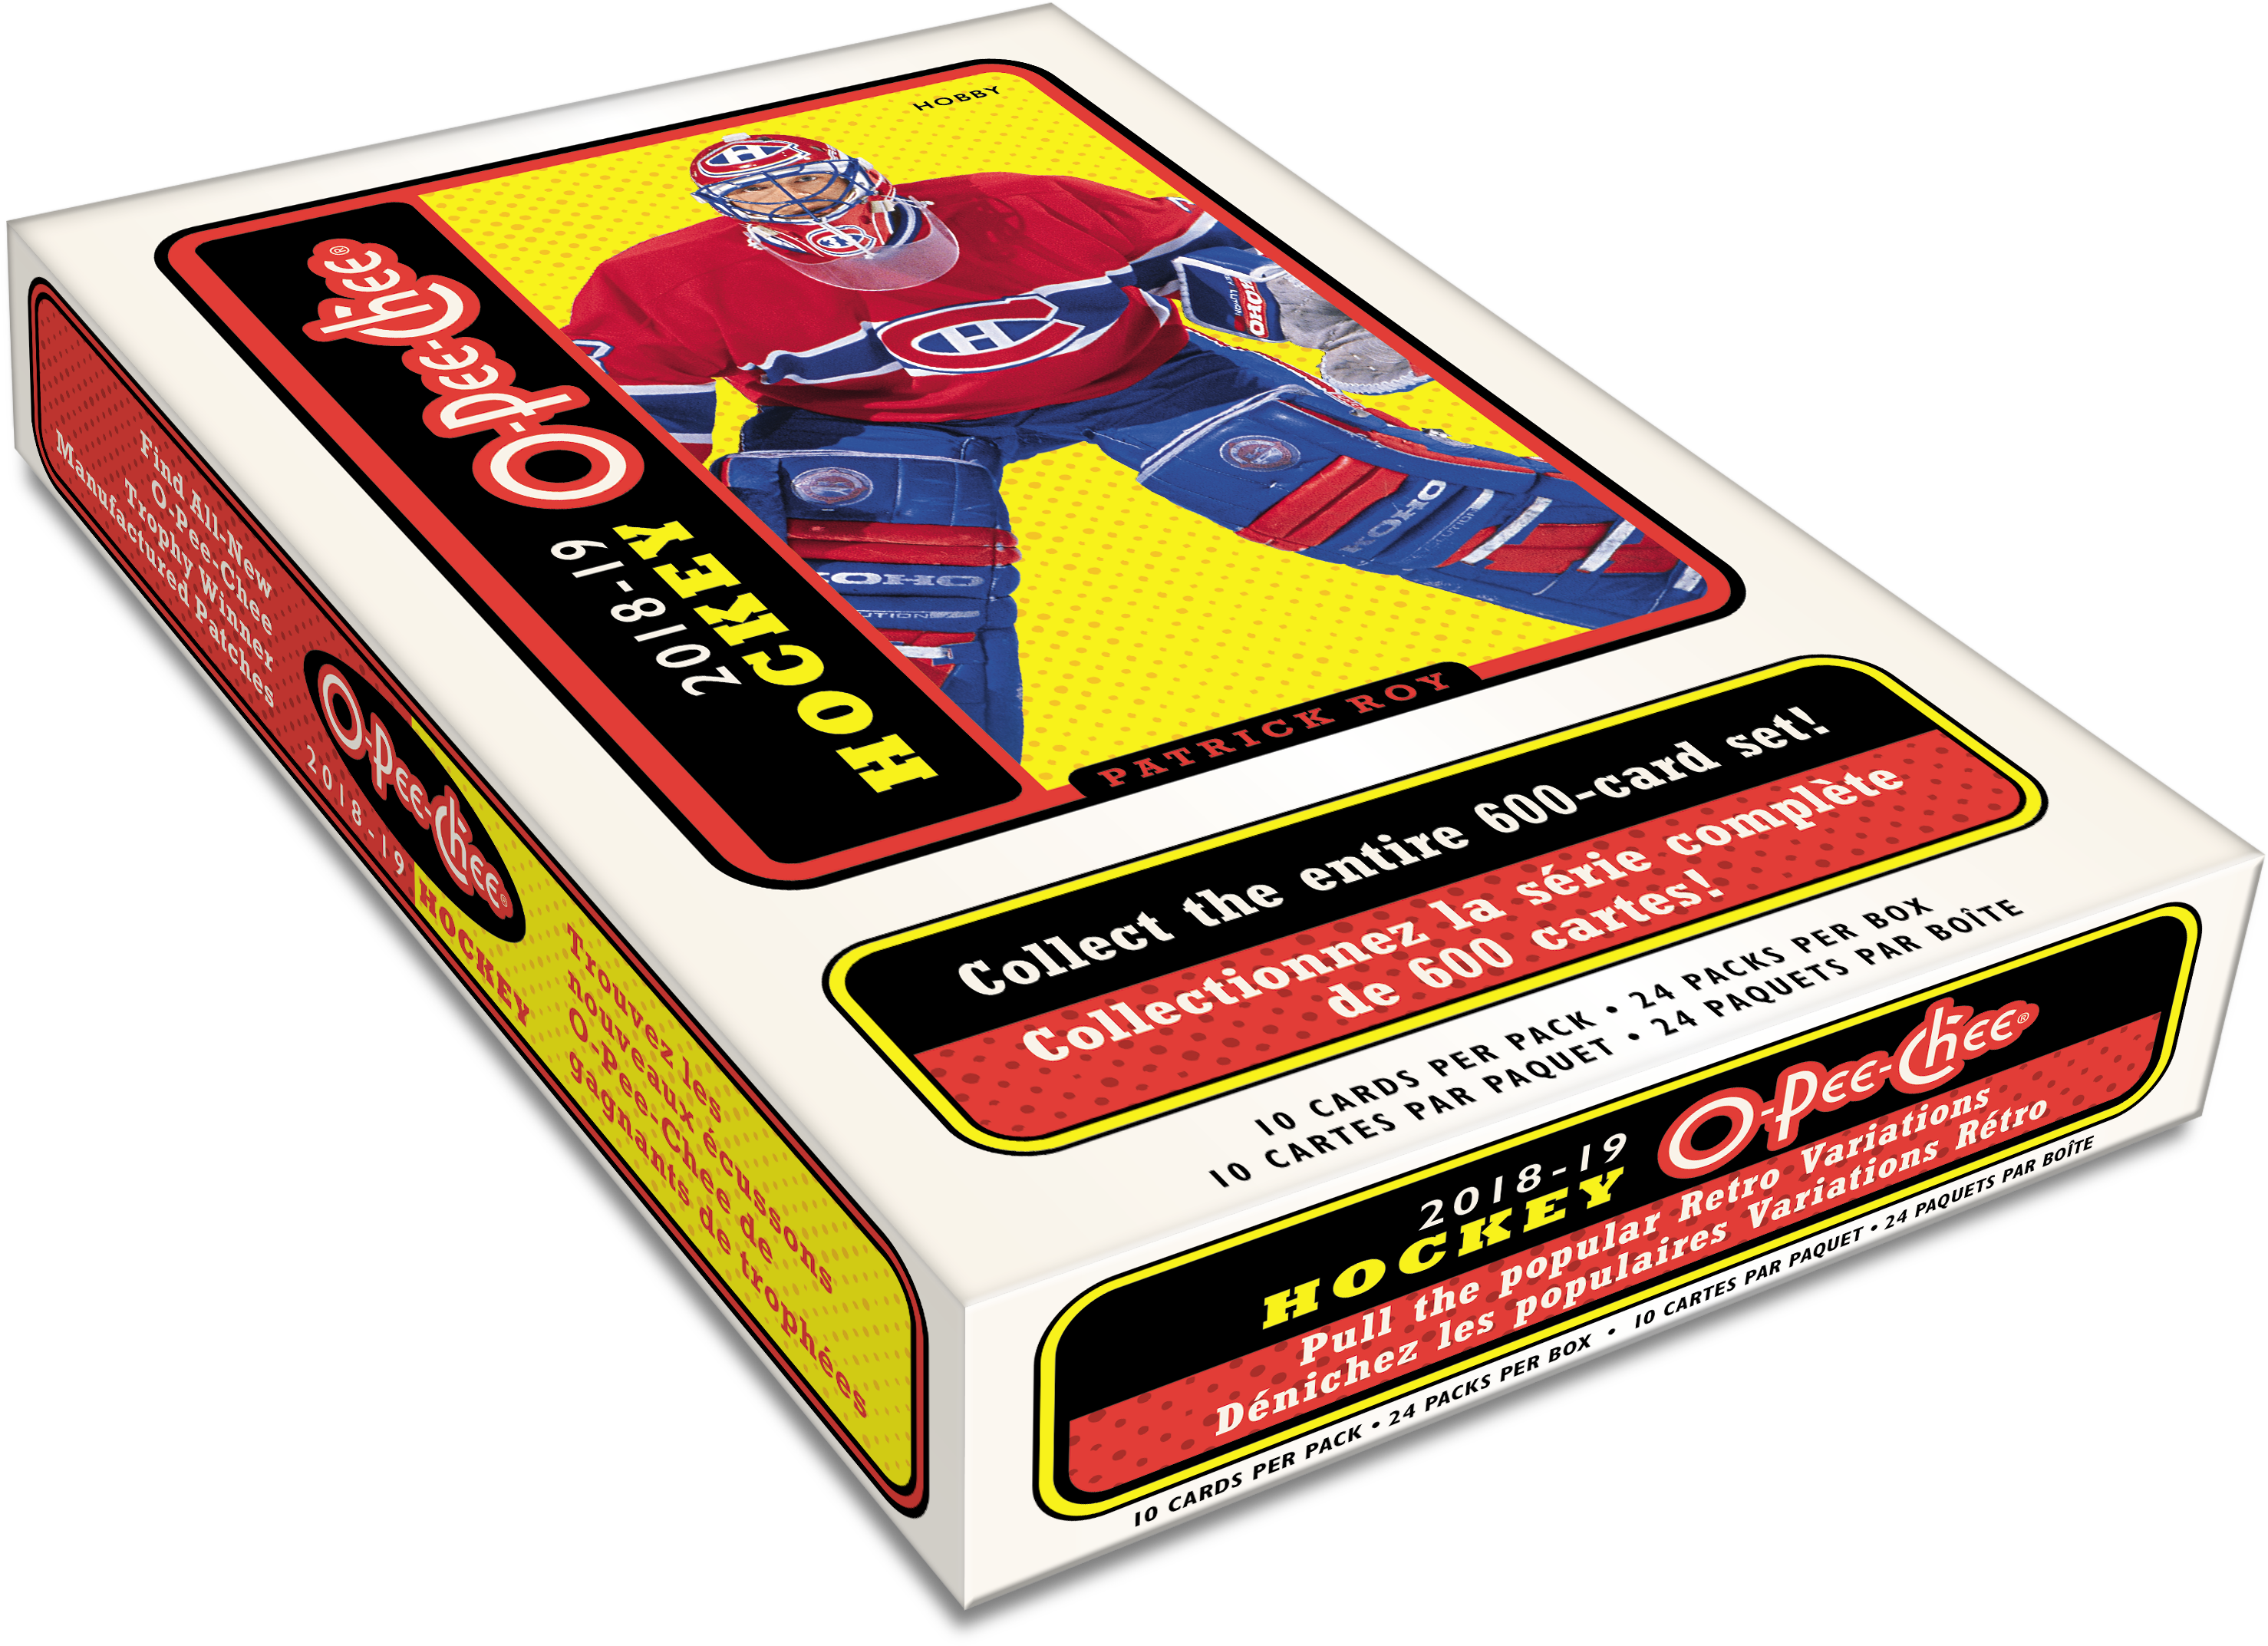 Prev - 2018 19 O Pee Chee Hobby Box (3184x2344), Png Download